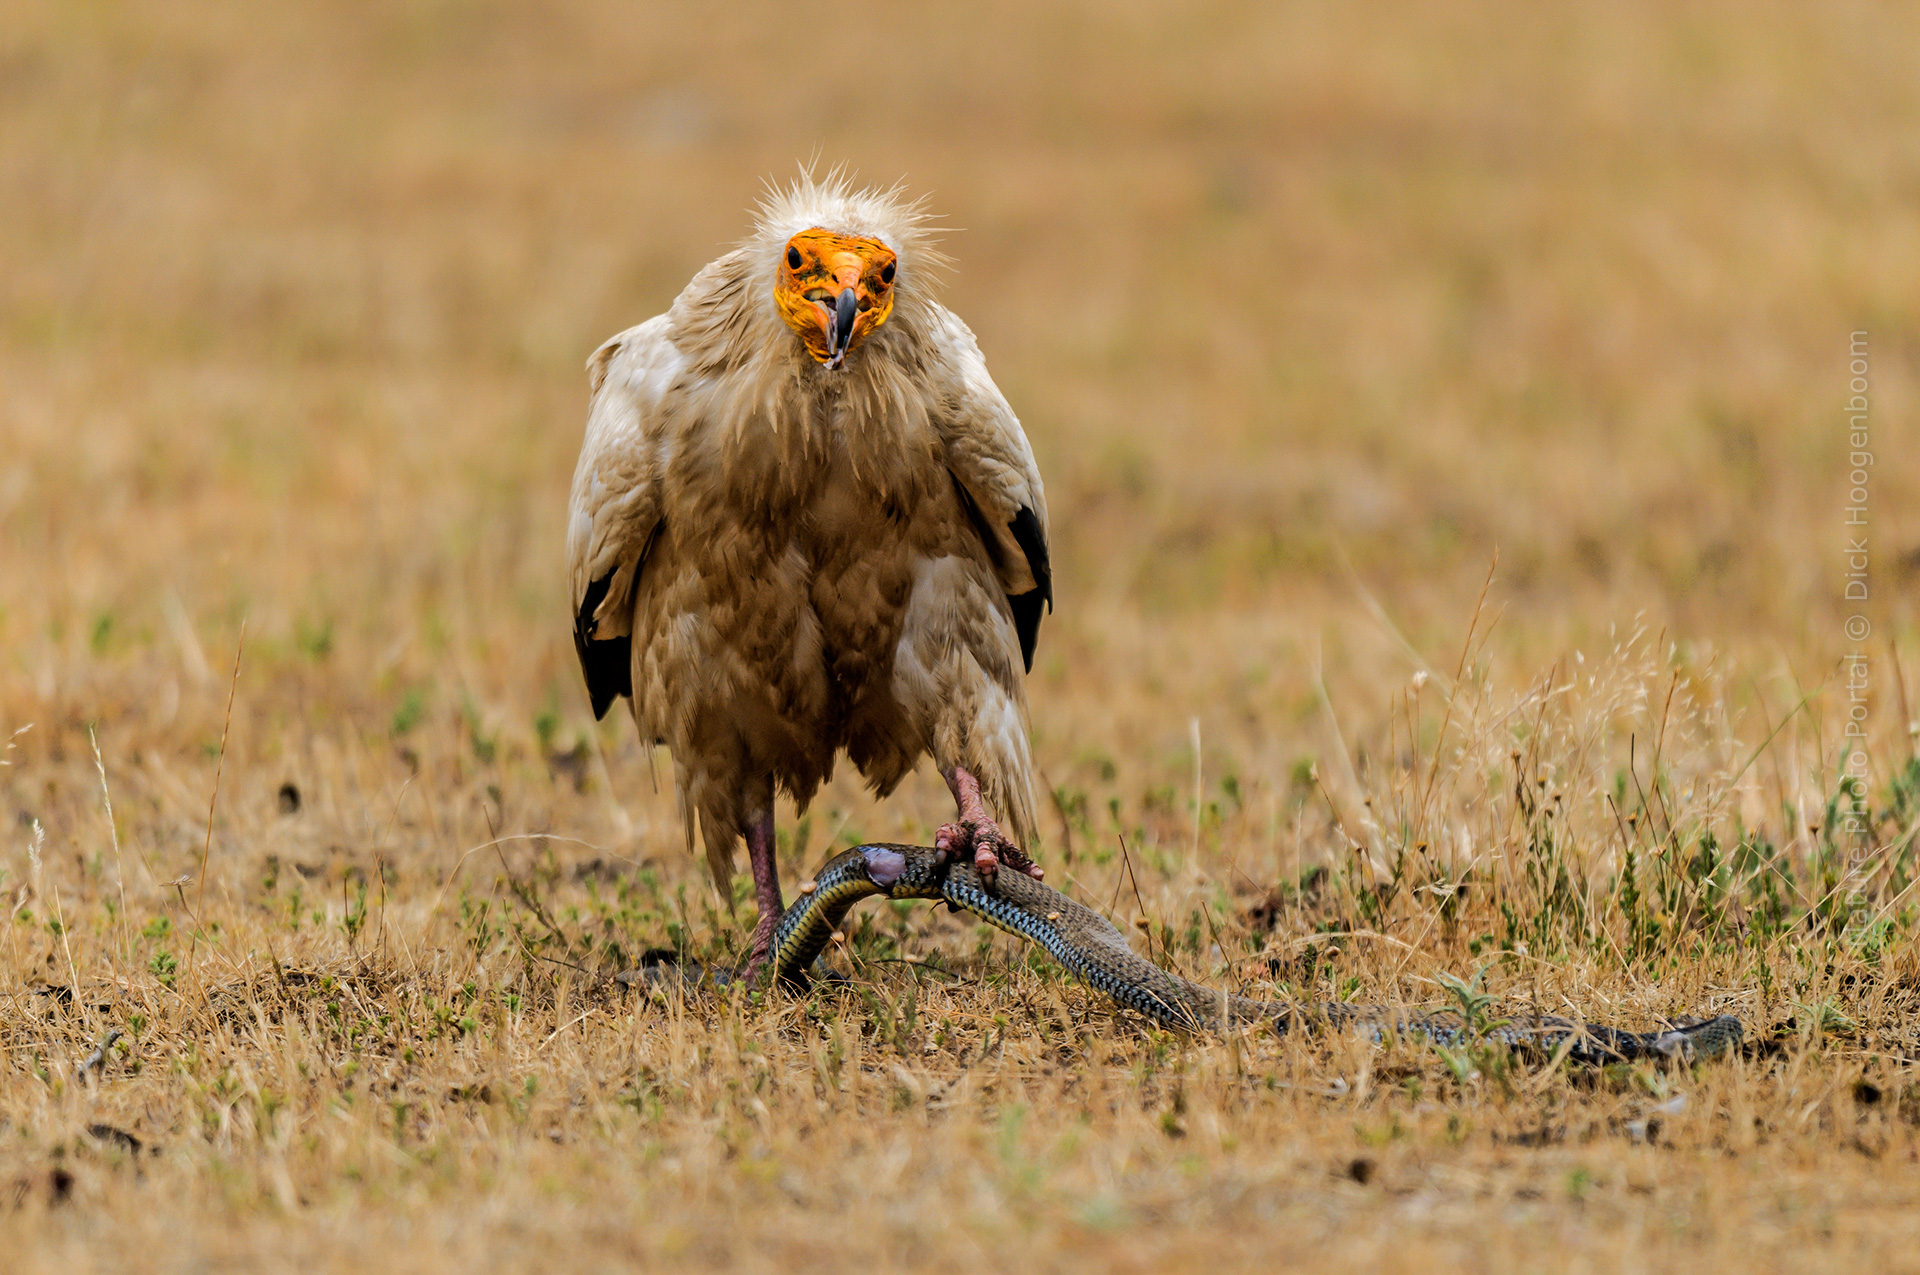 Bird photography Nature Photo Portal Dick Hoogenboom Extremadura Egyptian Vulture with Snake